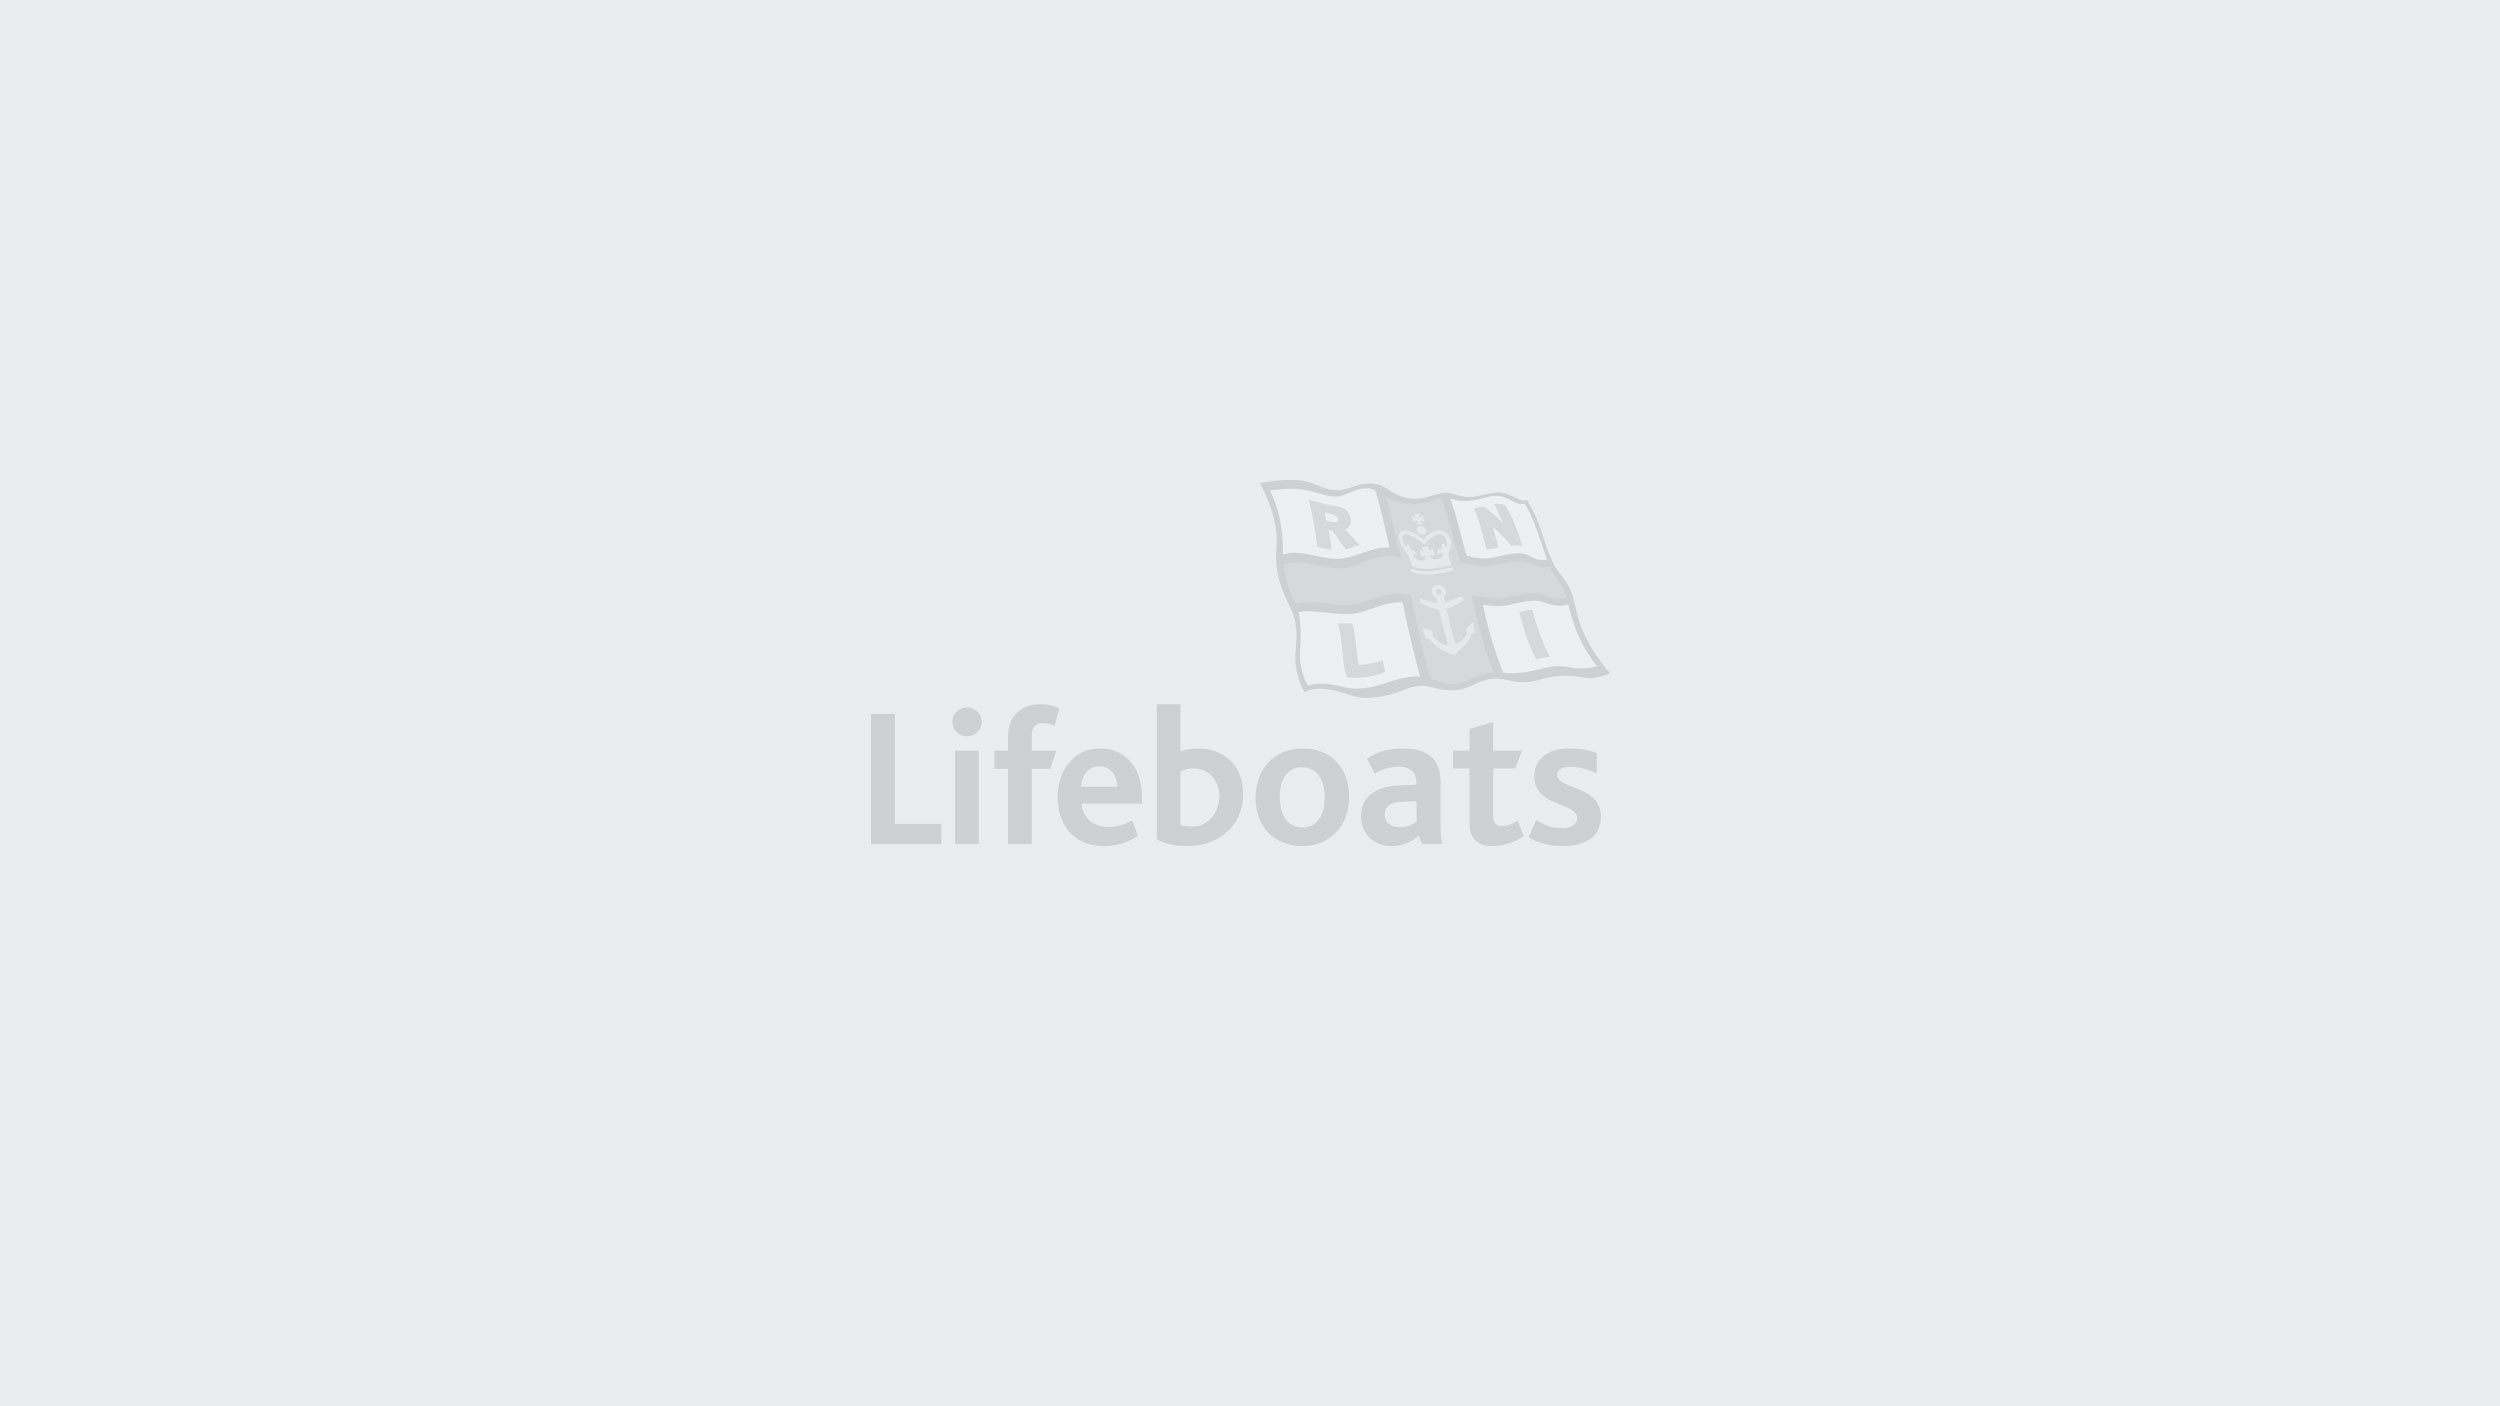 RNLI placeholder image: a grey background with a darker grey RNLI LIfeboats logo in the centre